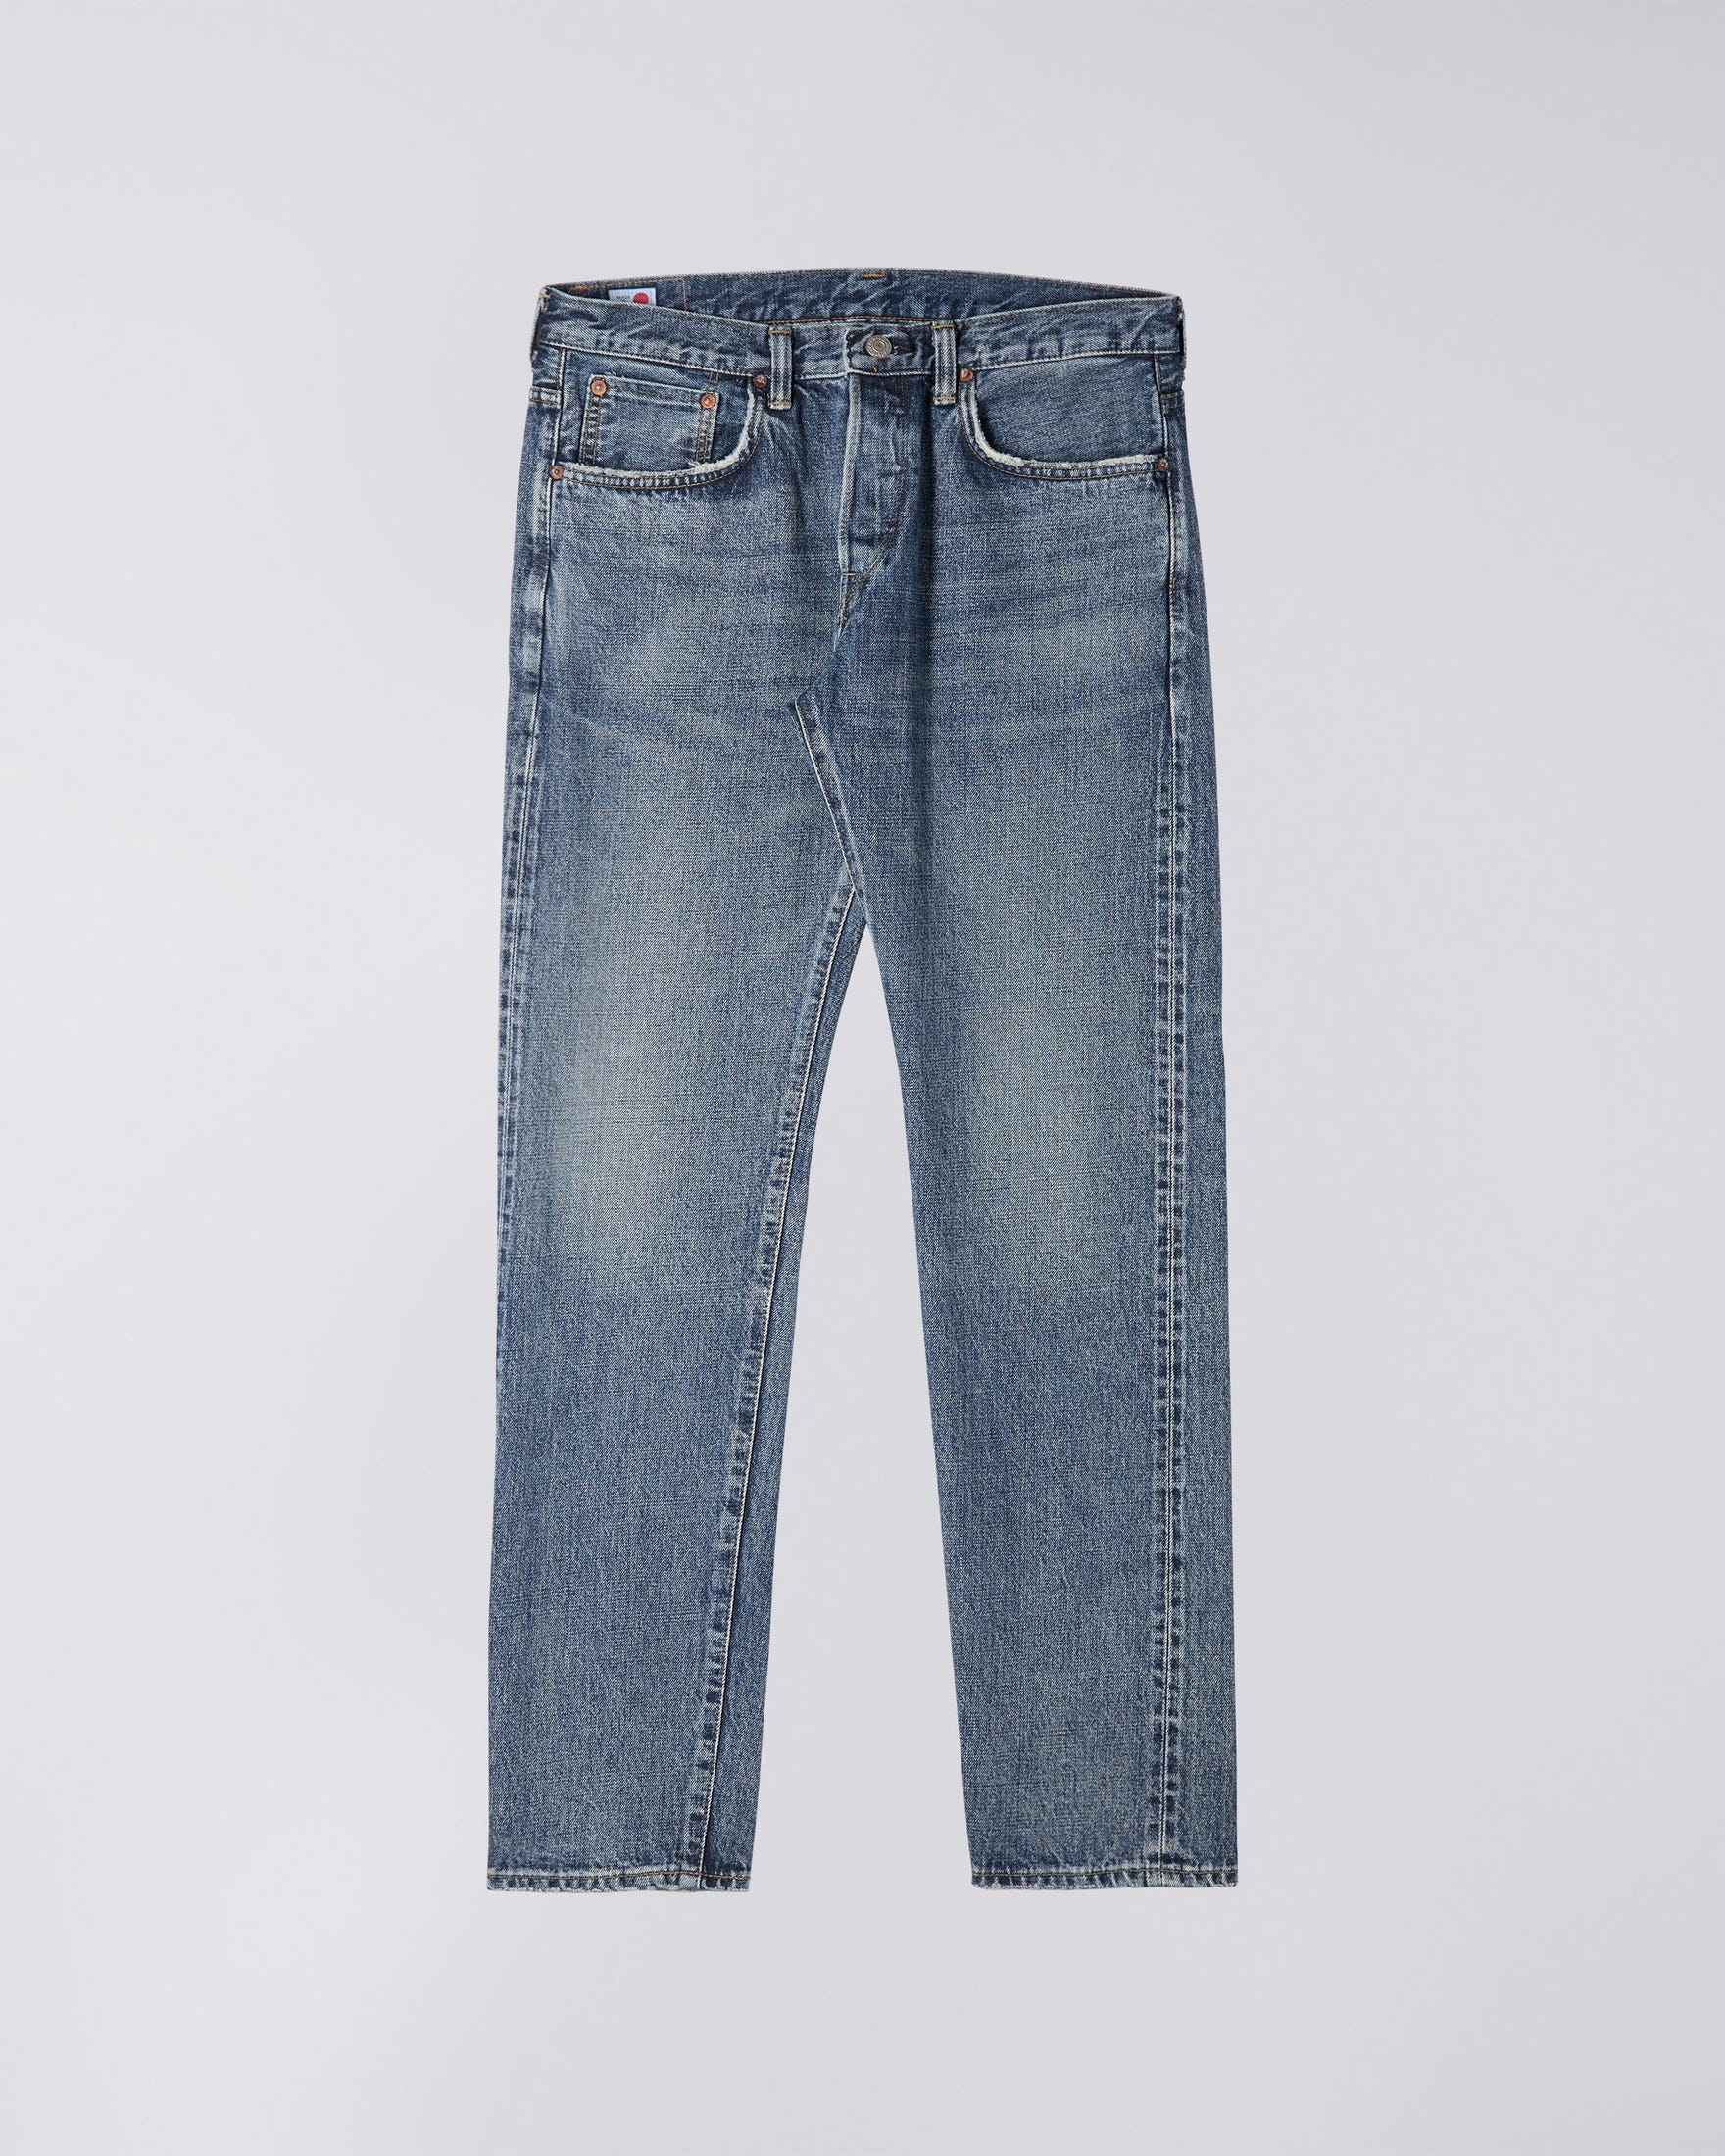 ic:Tabitha Webb | Edwin Europe Mens Jeans